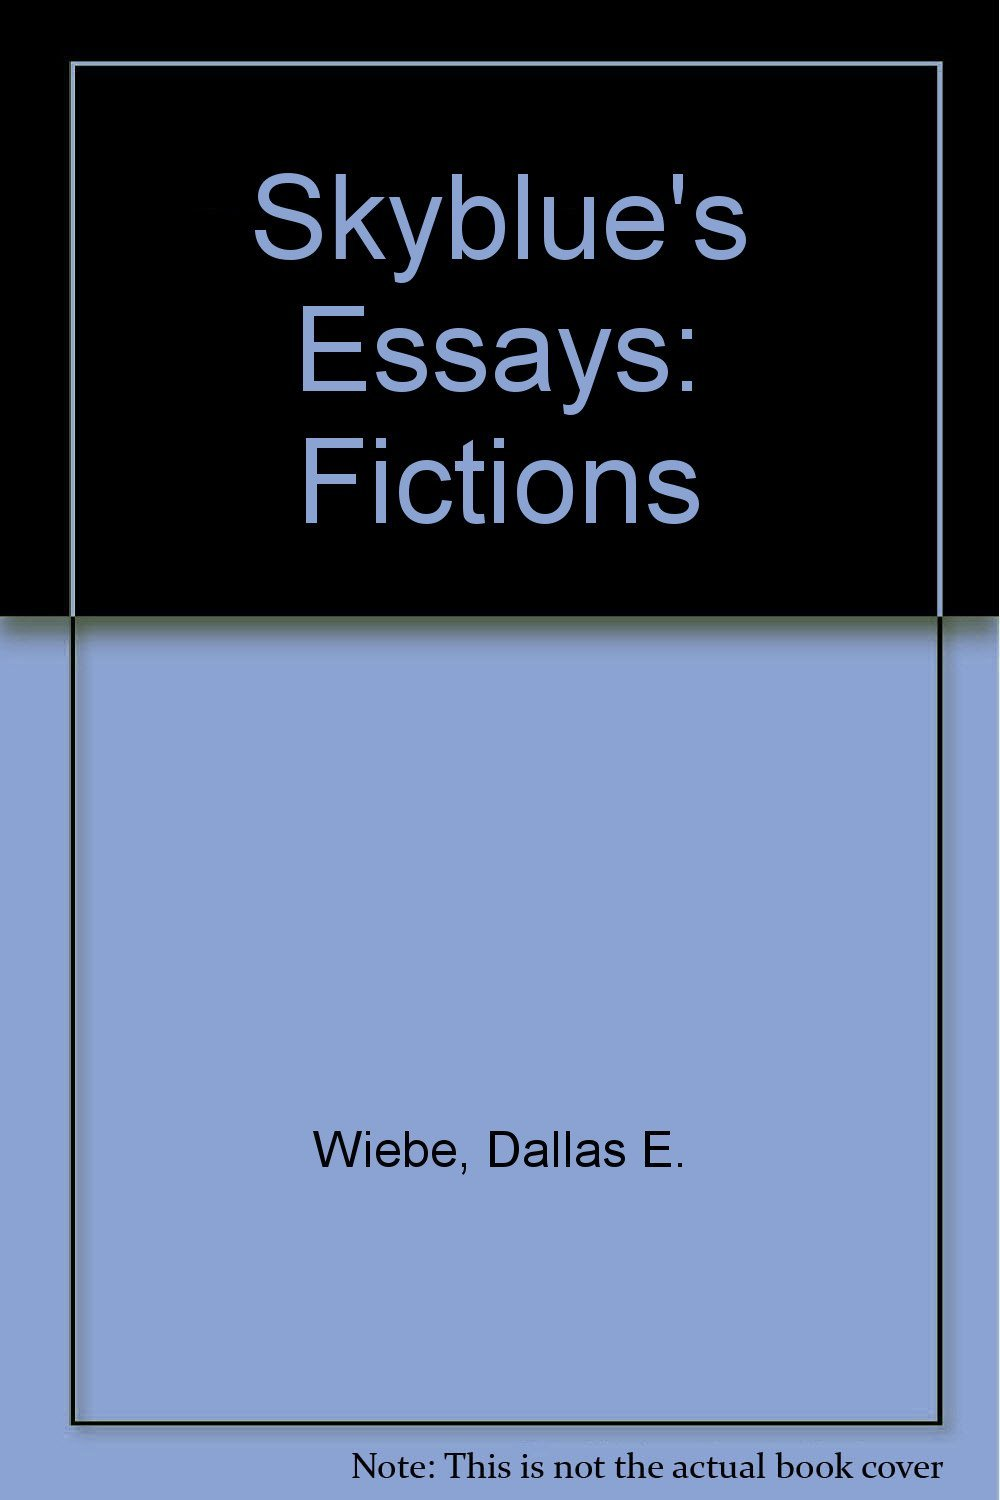 Skyblue's Essays: Short Prose written by Dallas E. Wiebe